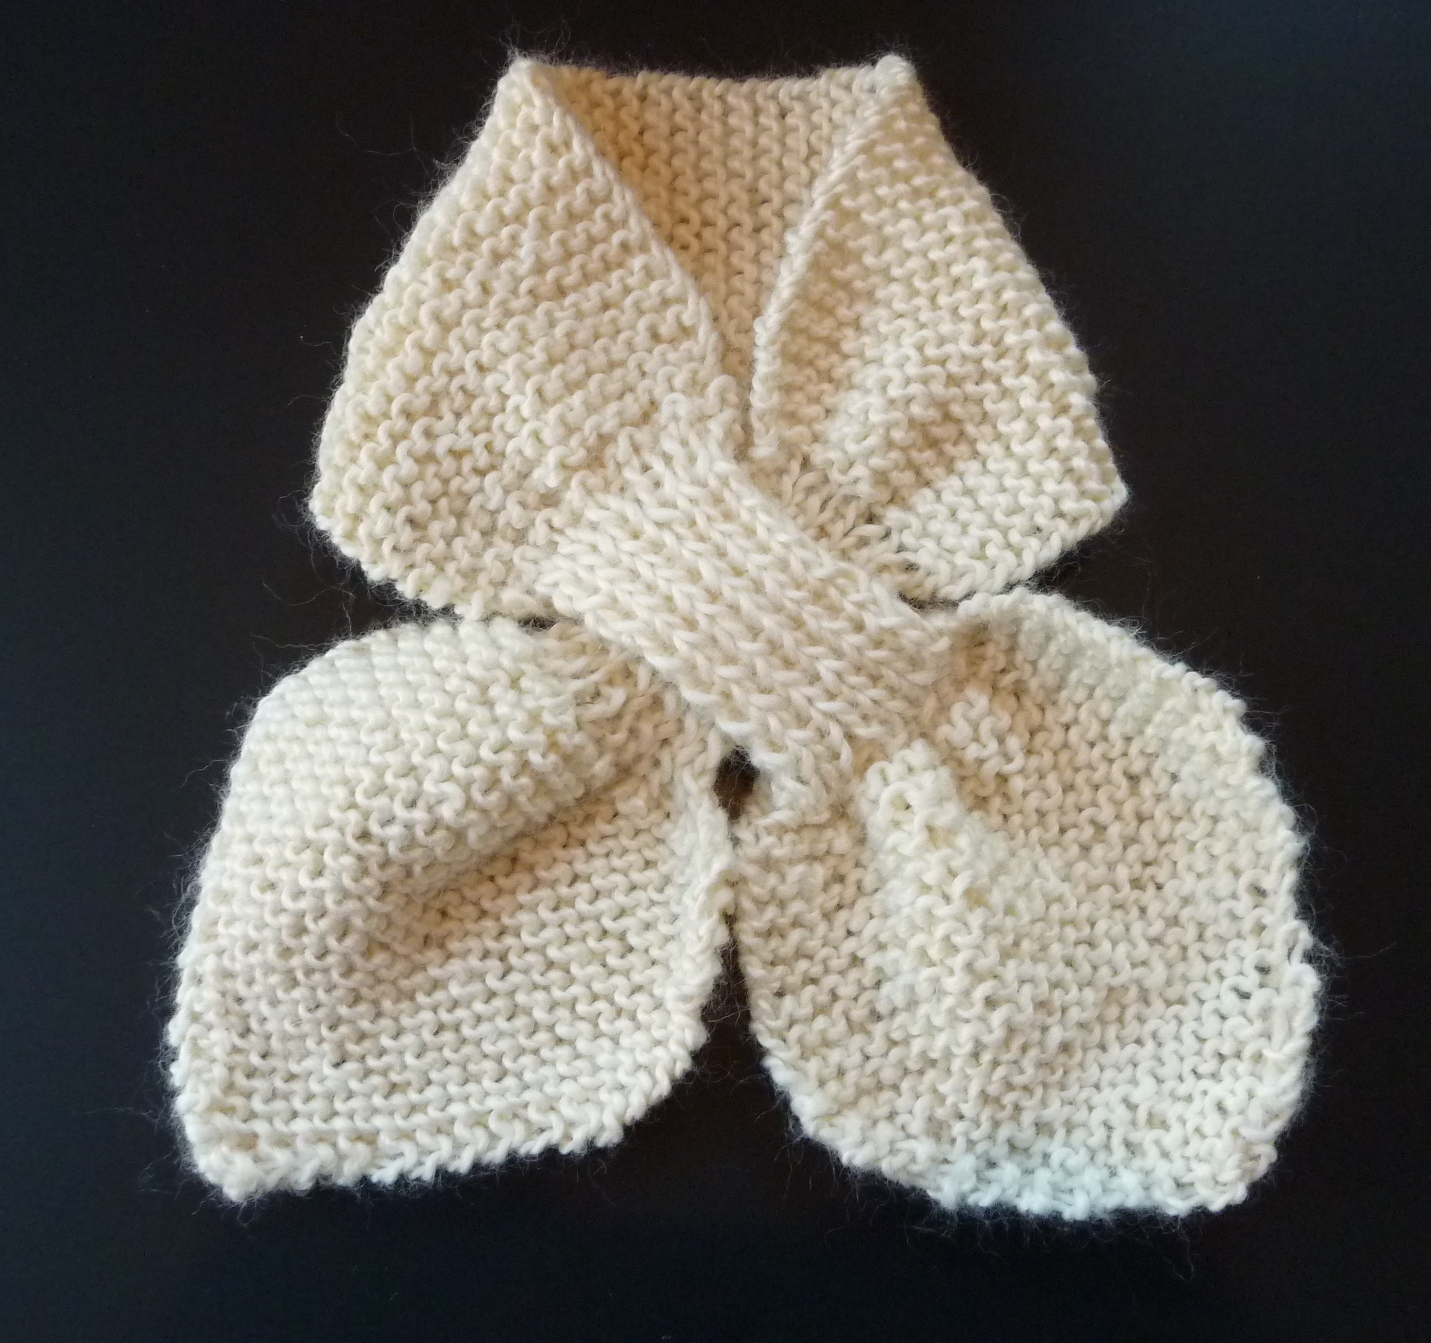 Knitted Patterns For Tuck In Or Bow Knot Scarf Abnercrawford S Blog